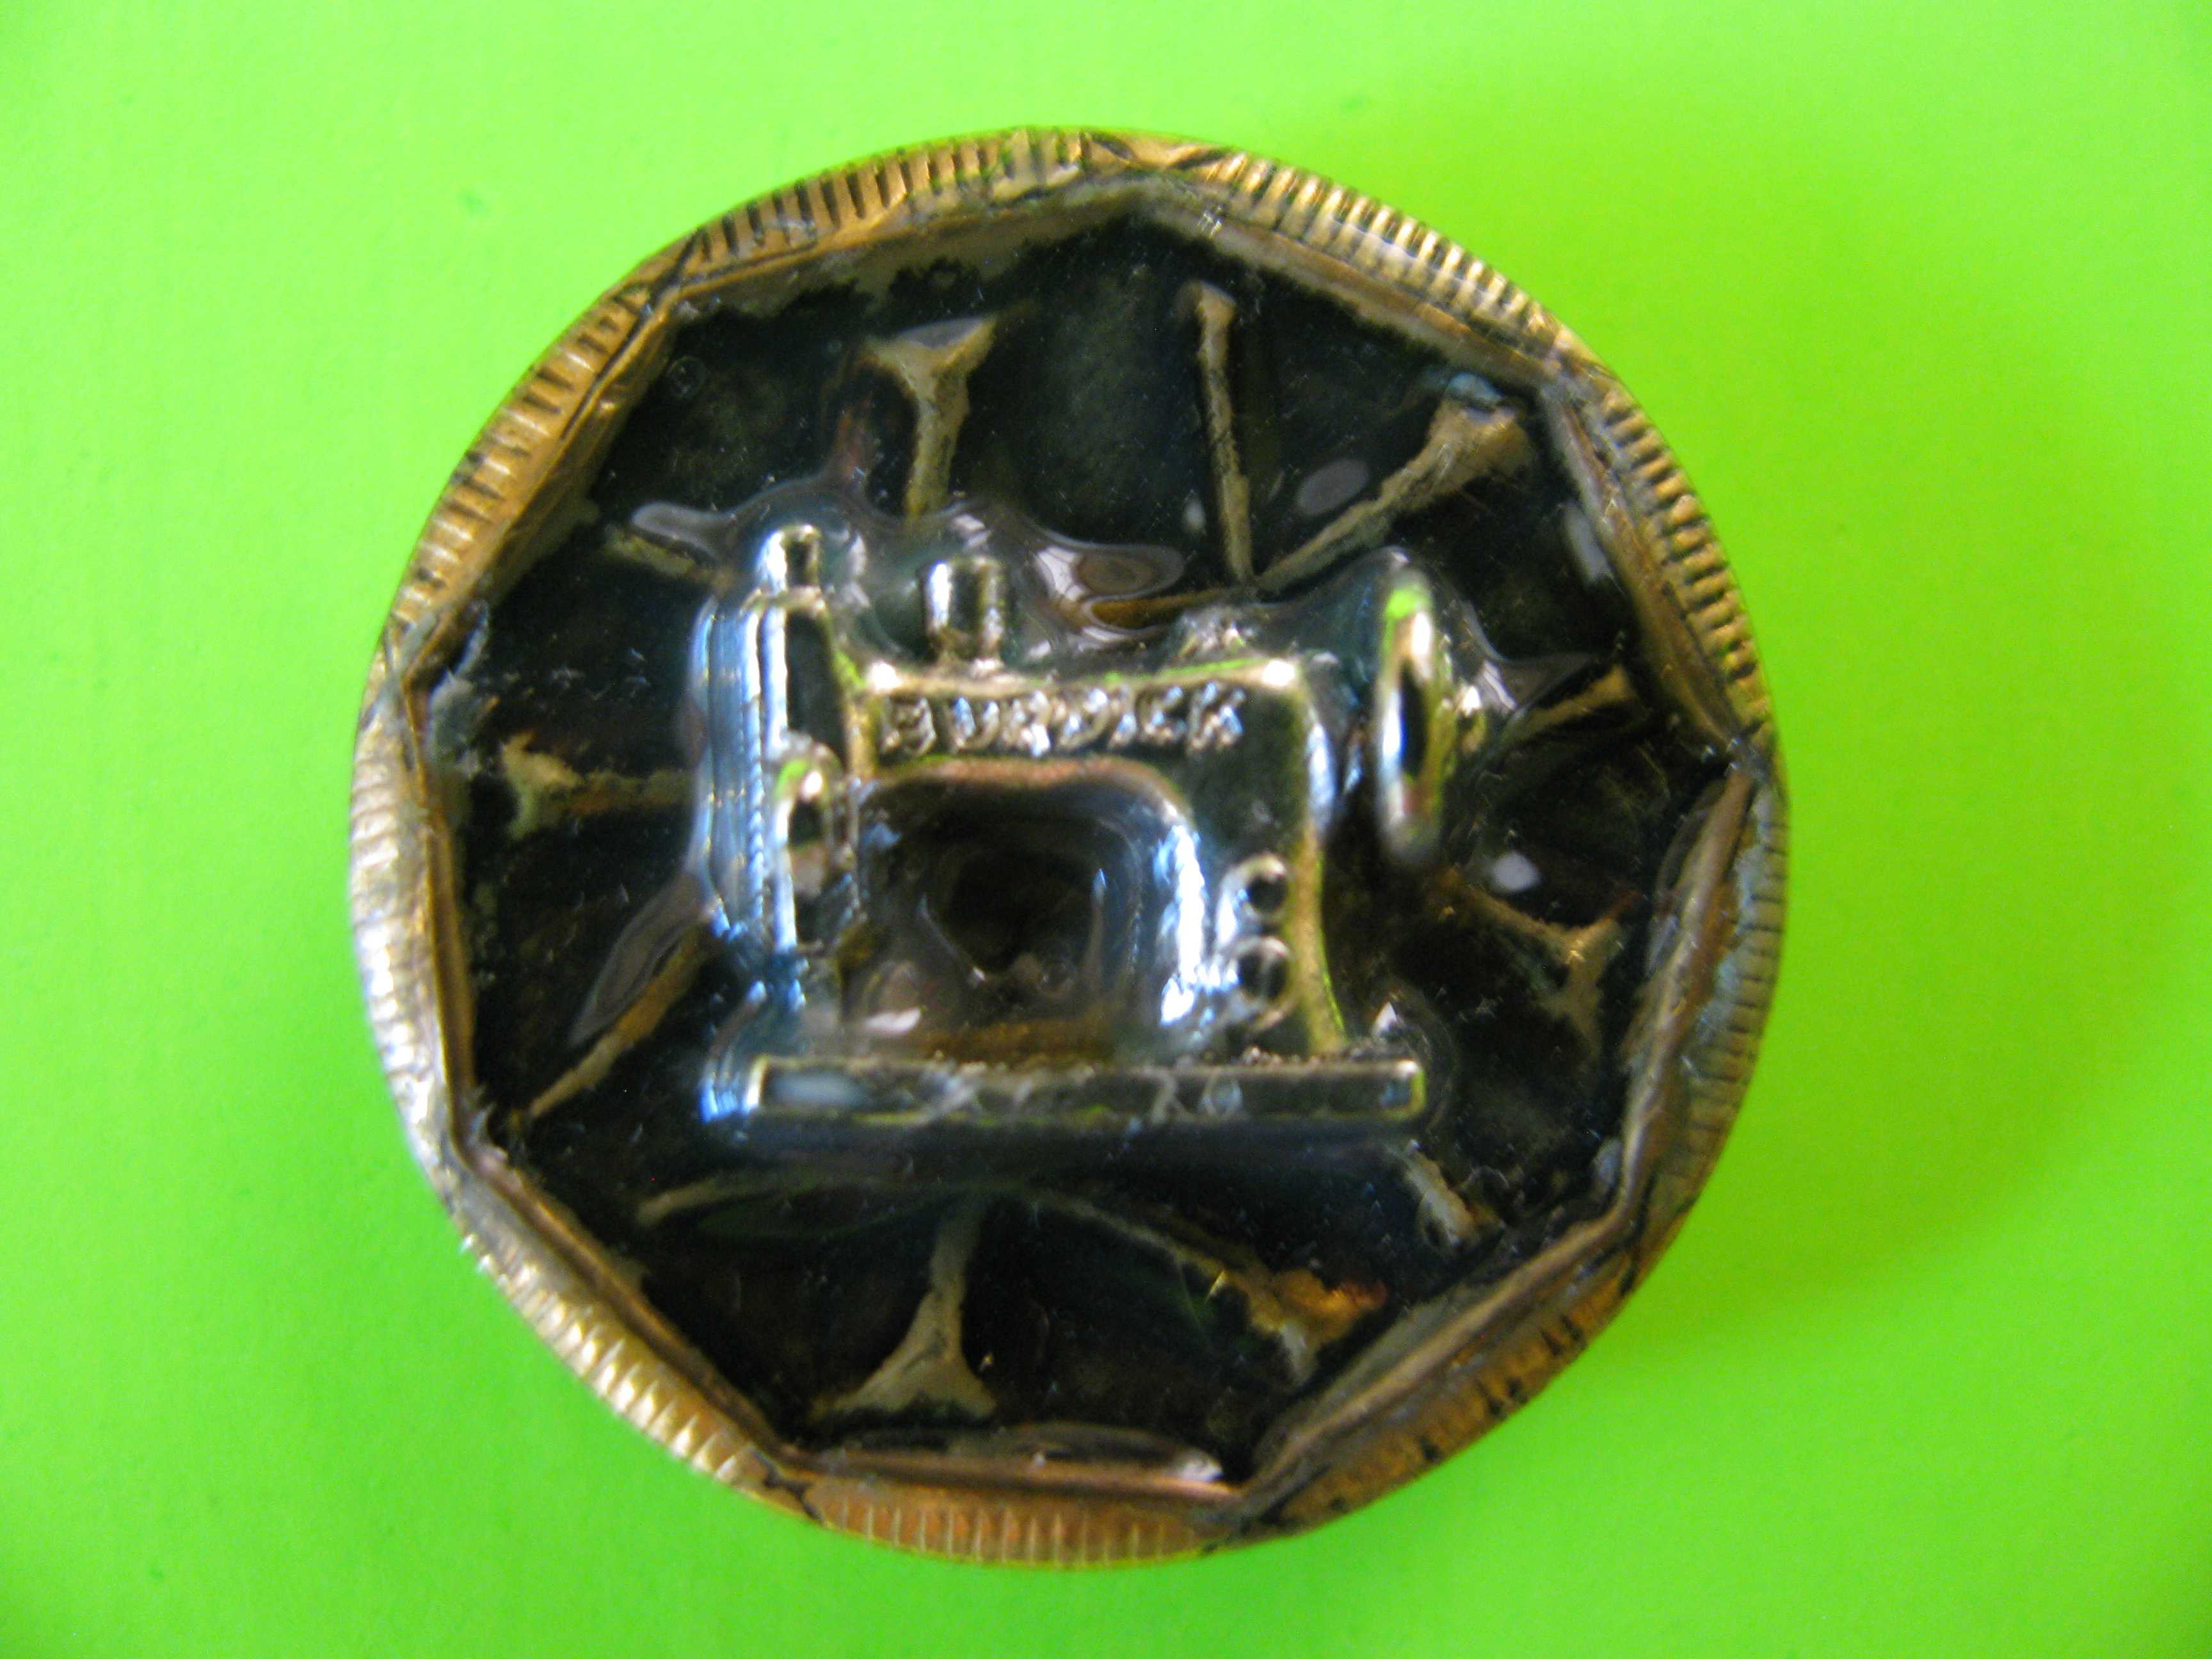 Vintage Sewing Machine Button in Gold Like Metal with Pewter Insert of Sewing Machine & Loop Shank